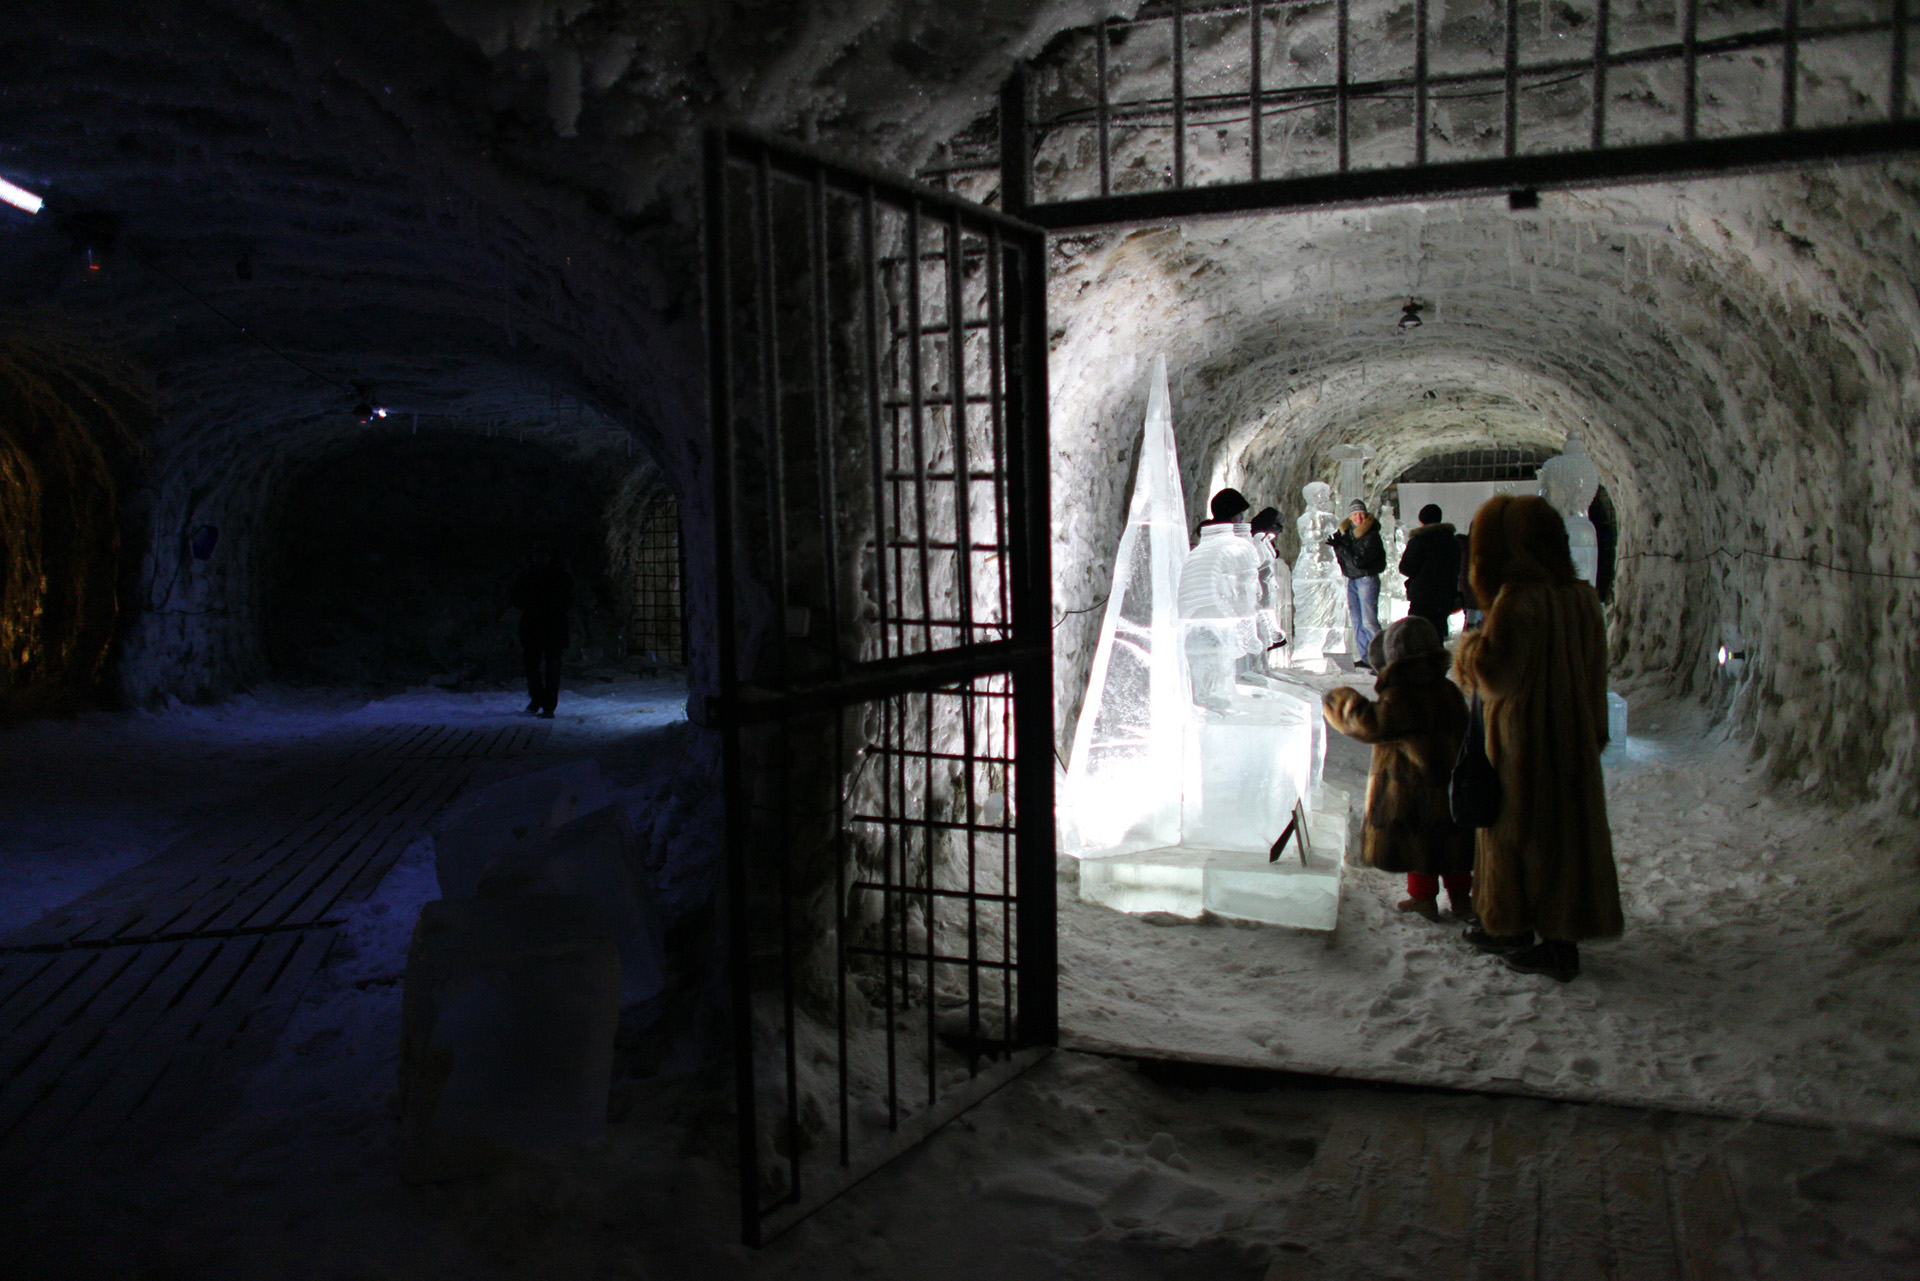 Exhibition of ice sculptures